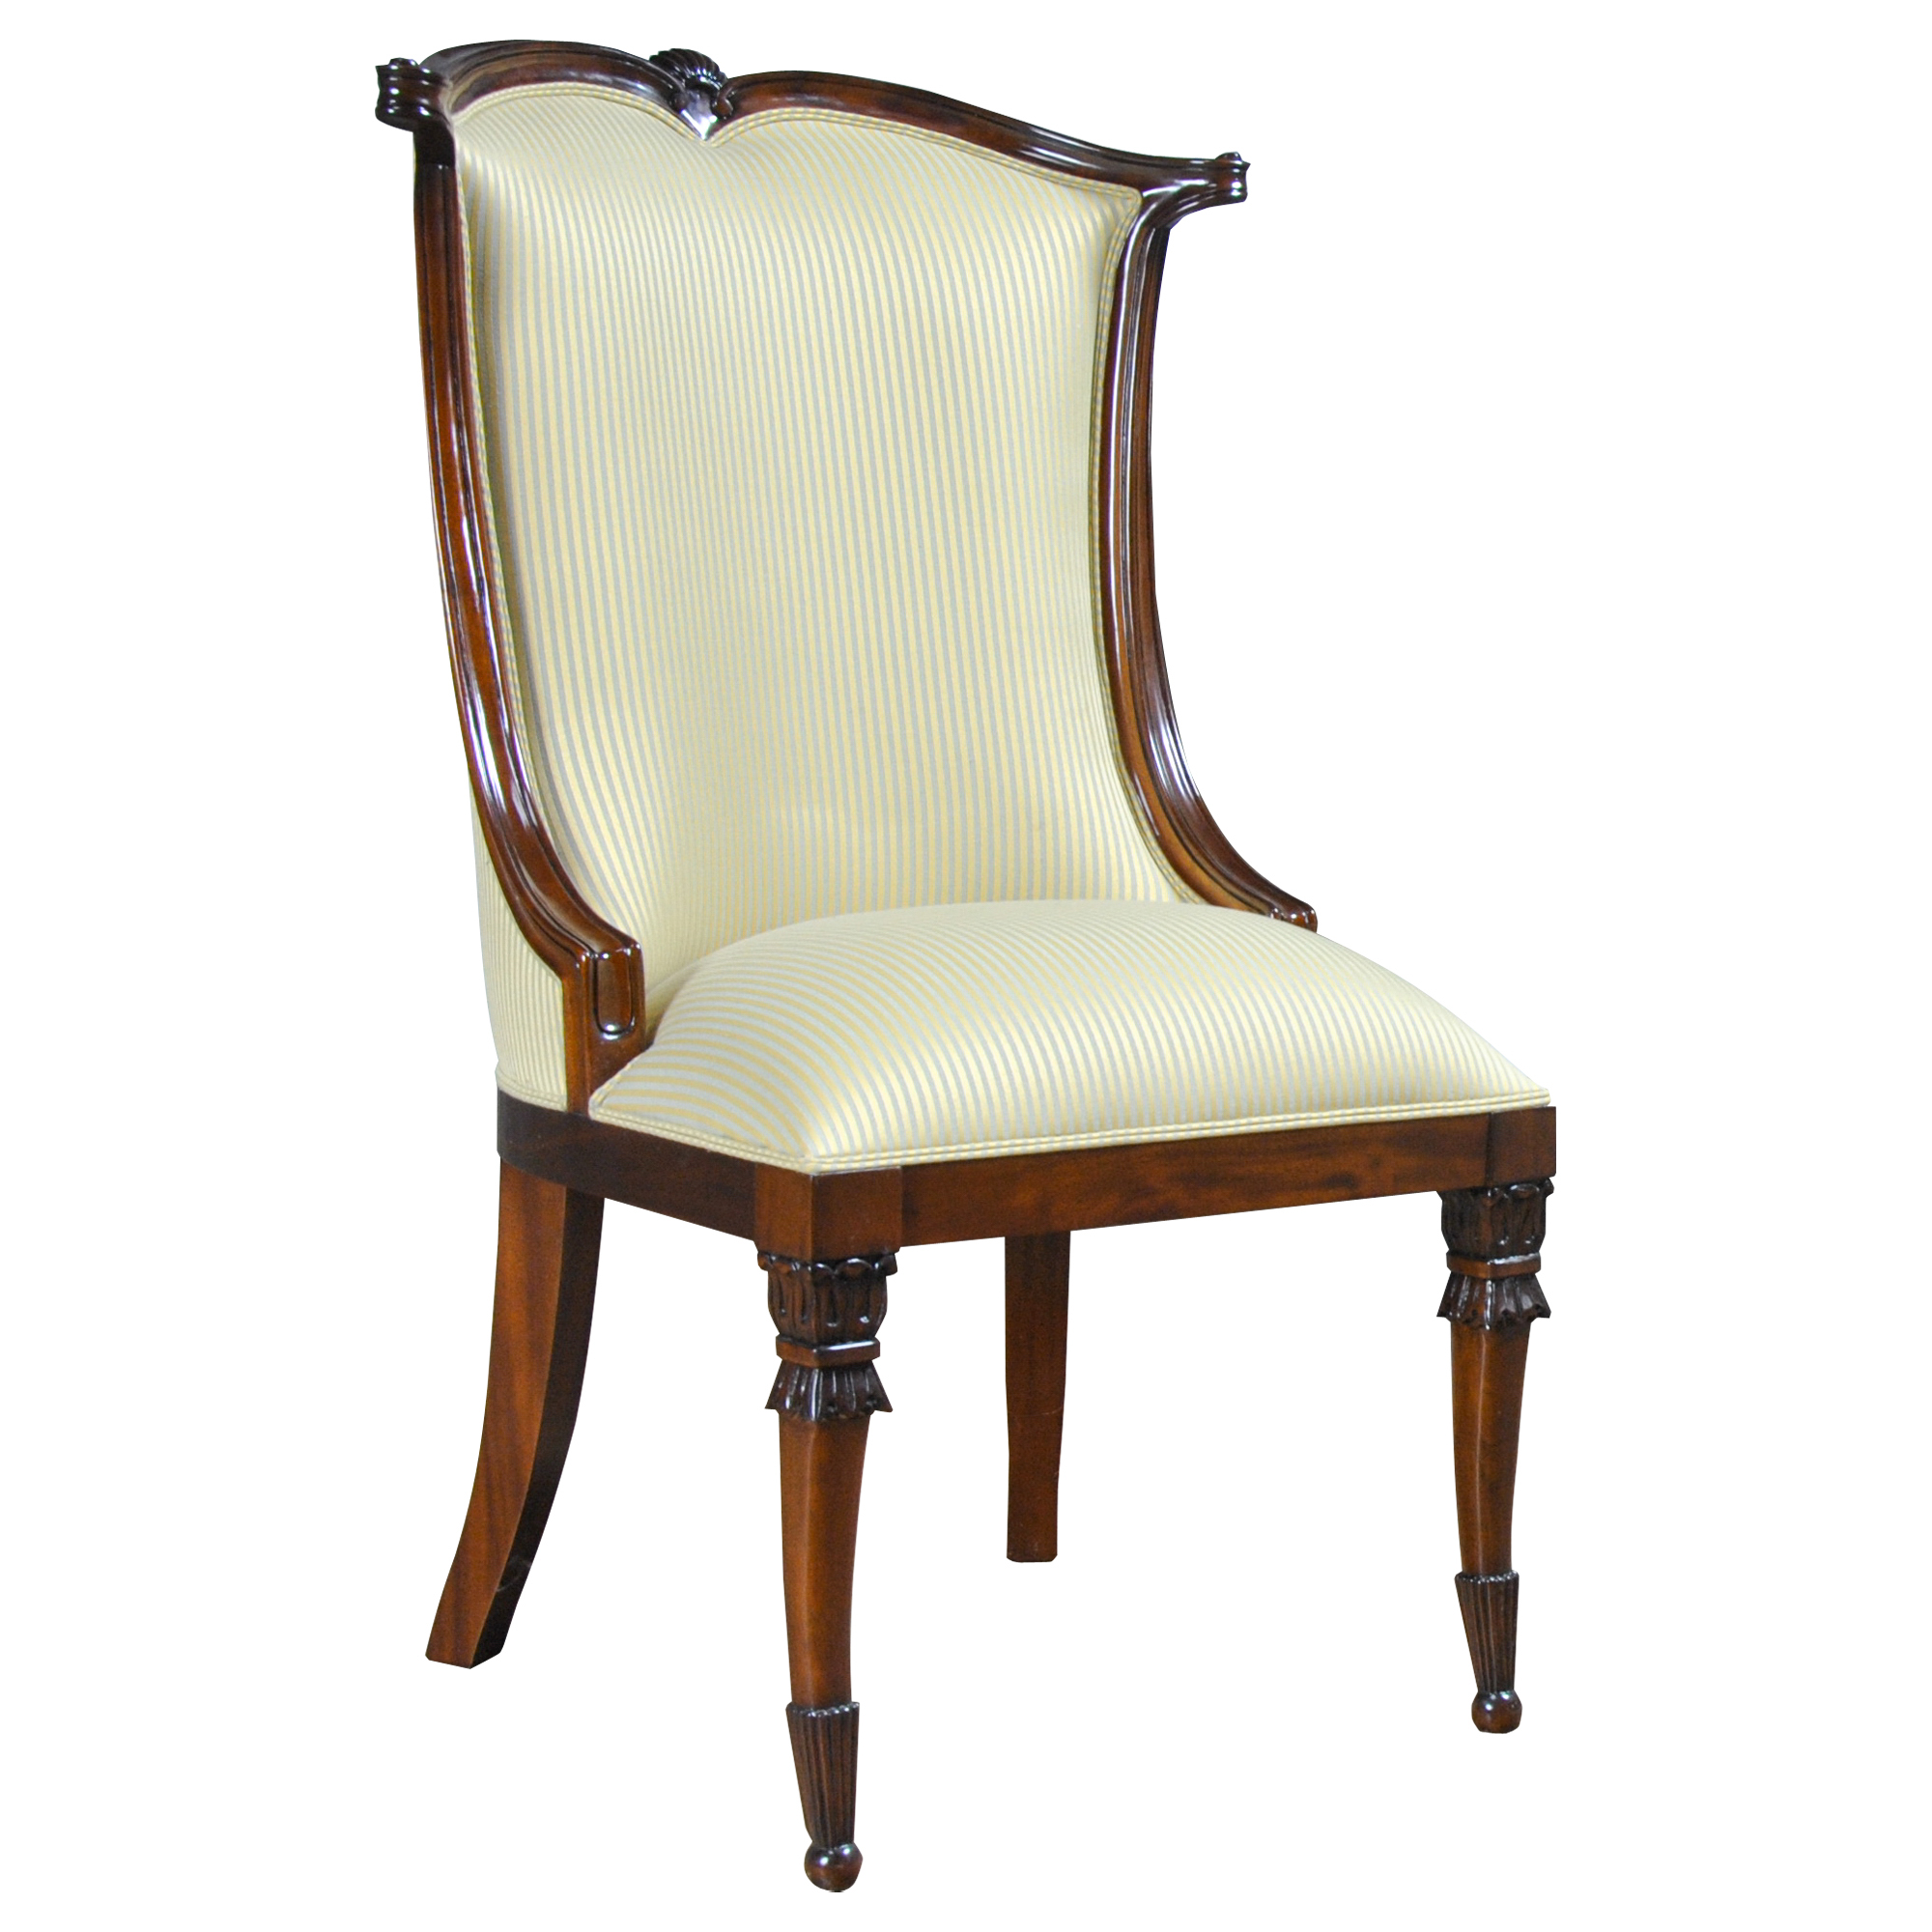 American Upholstered Side Chair Niagara Furniture High End